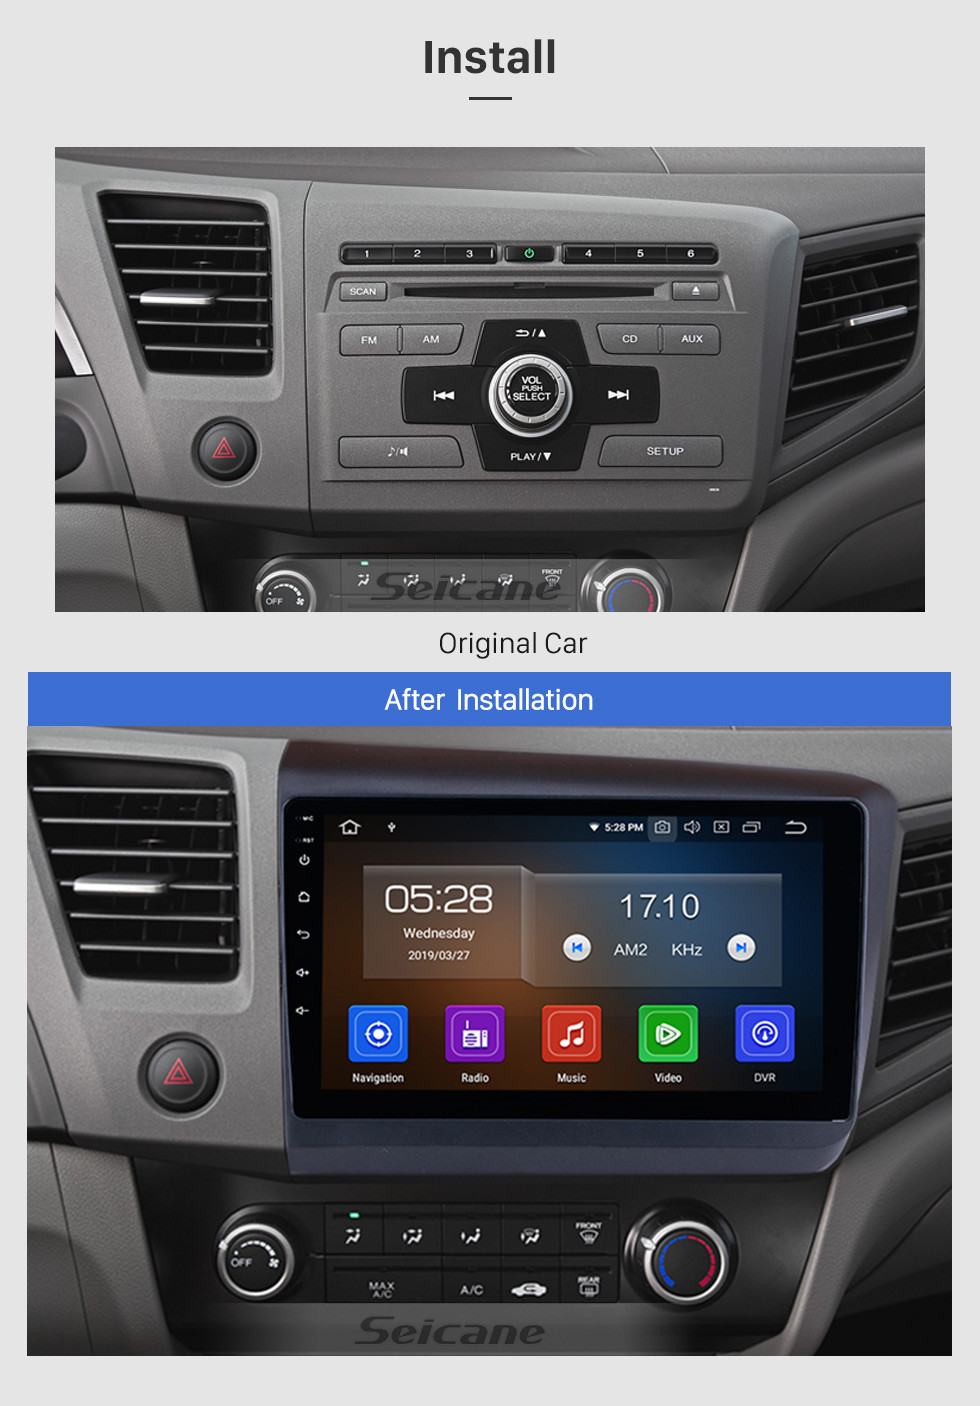 Seicane 10.1 inch  2012 Honda Civic Android 9.0 Radio GPS navigation system with HD 1024*600 touch screen Bluetooth OBD2 DVR Rearview camera TV 1080P Video 3G WIFI Steering Wheel Control USB Mirror link